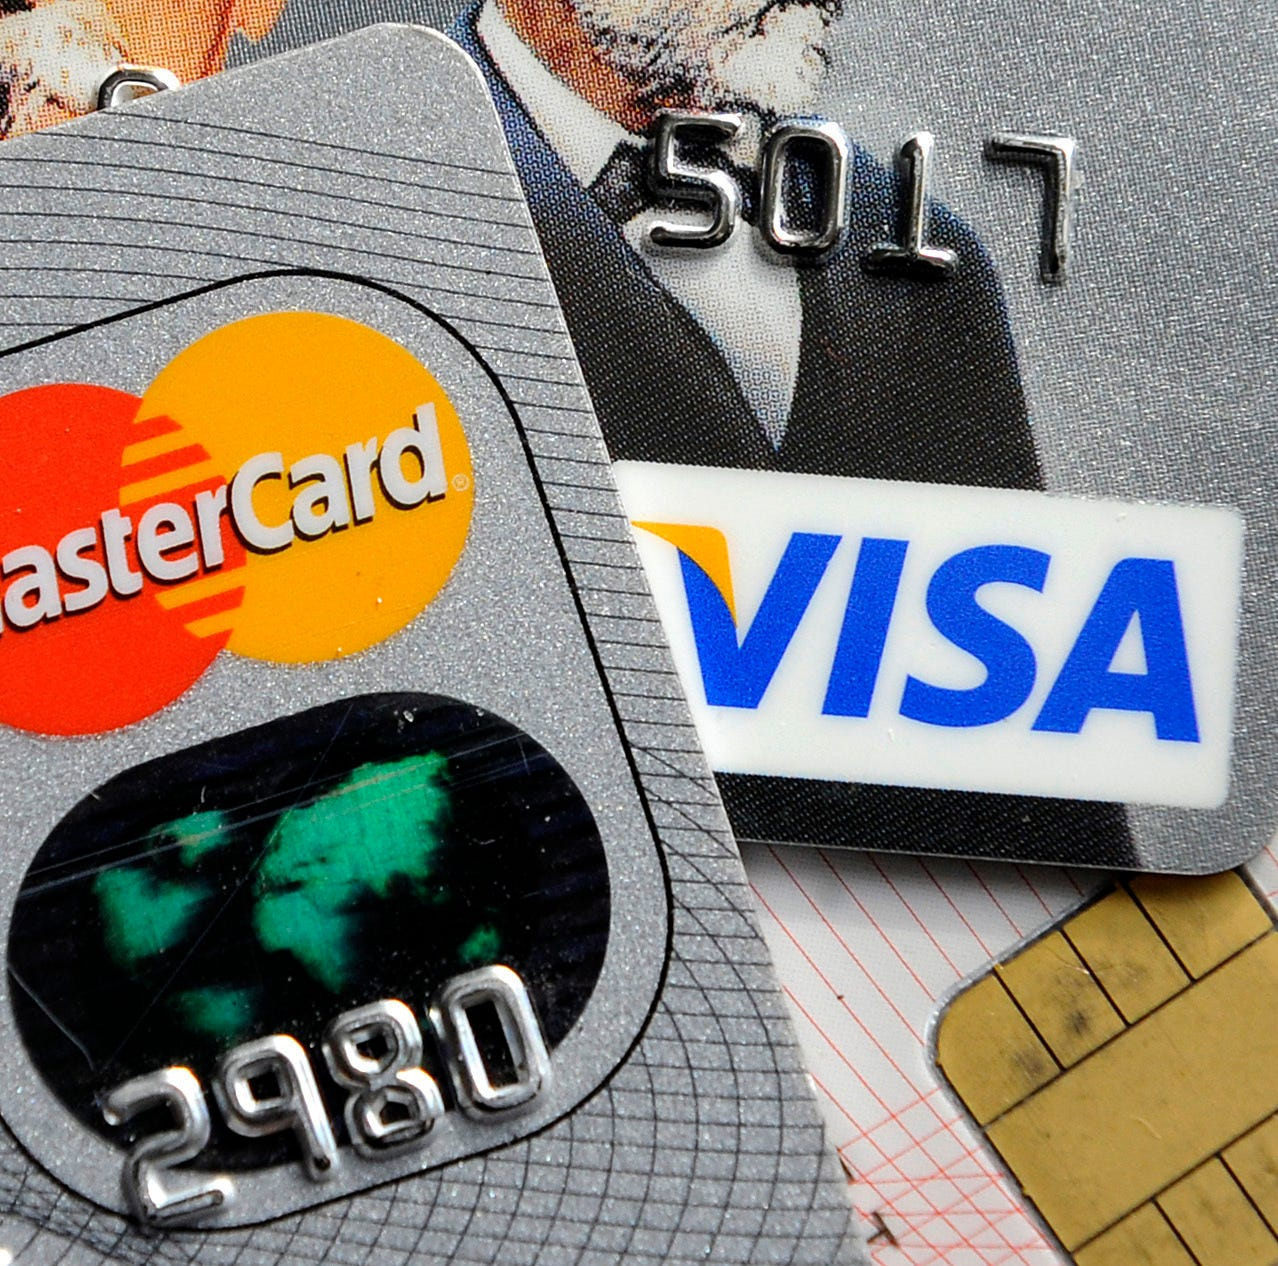 Wisconsin has one of the lowest credit card debt burdens in the country, study finds